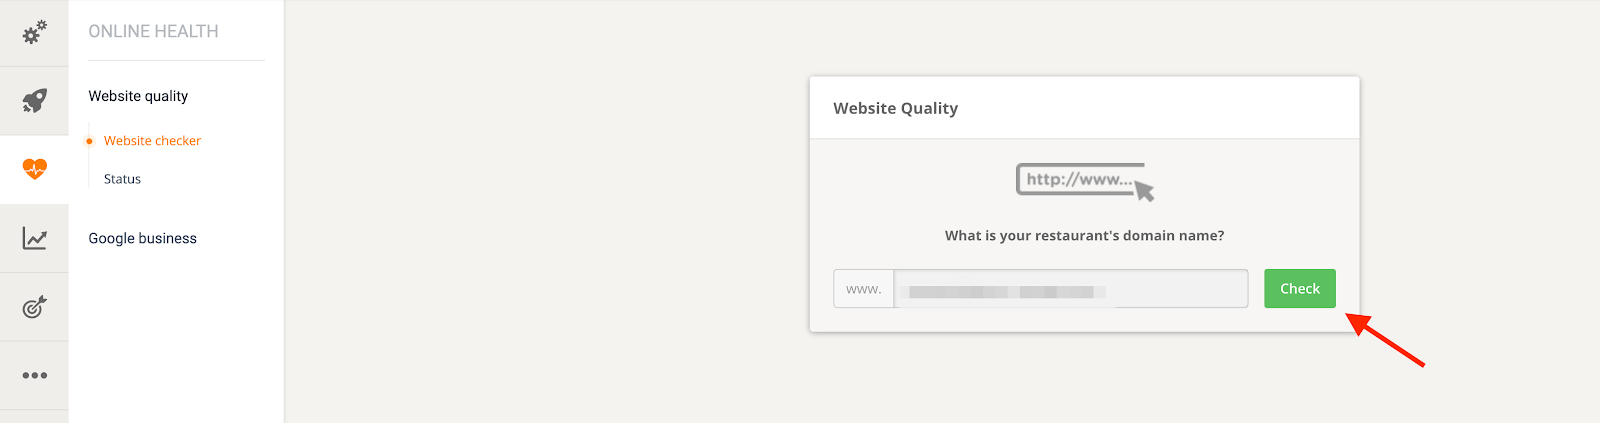 website quality is the key to success in restaurant business